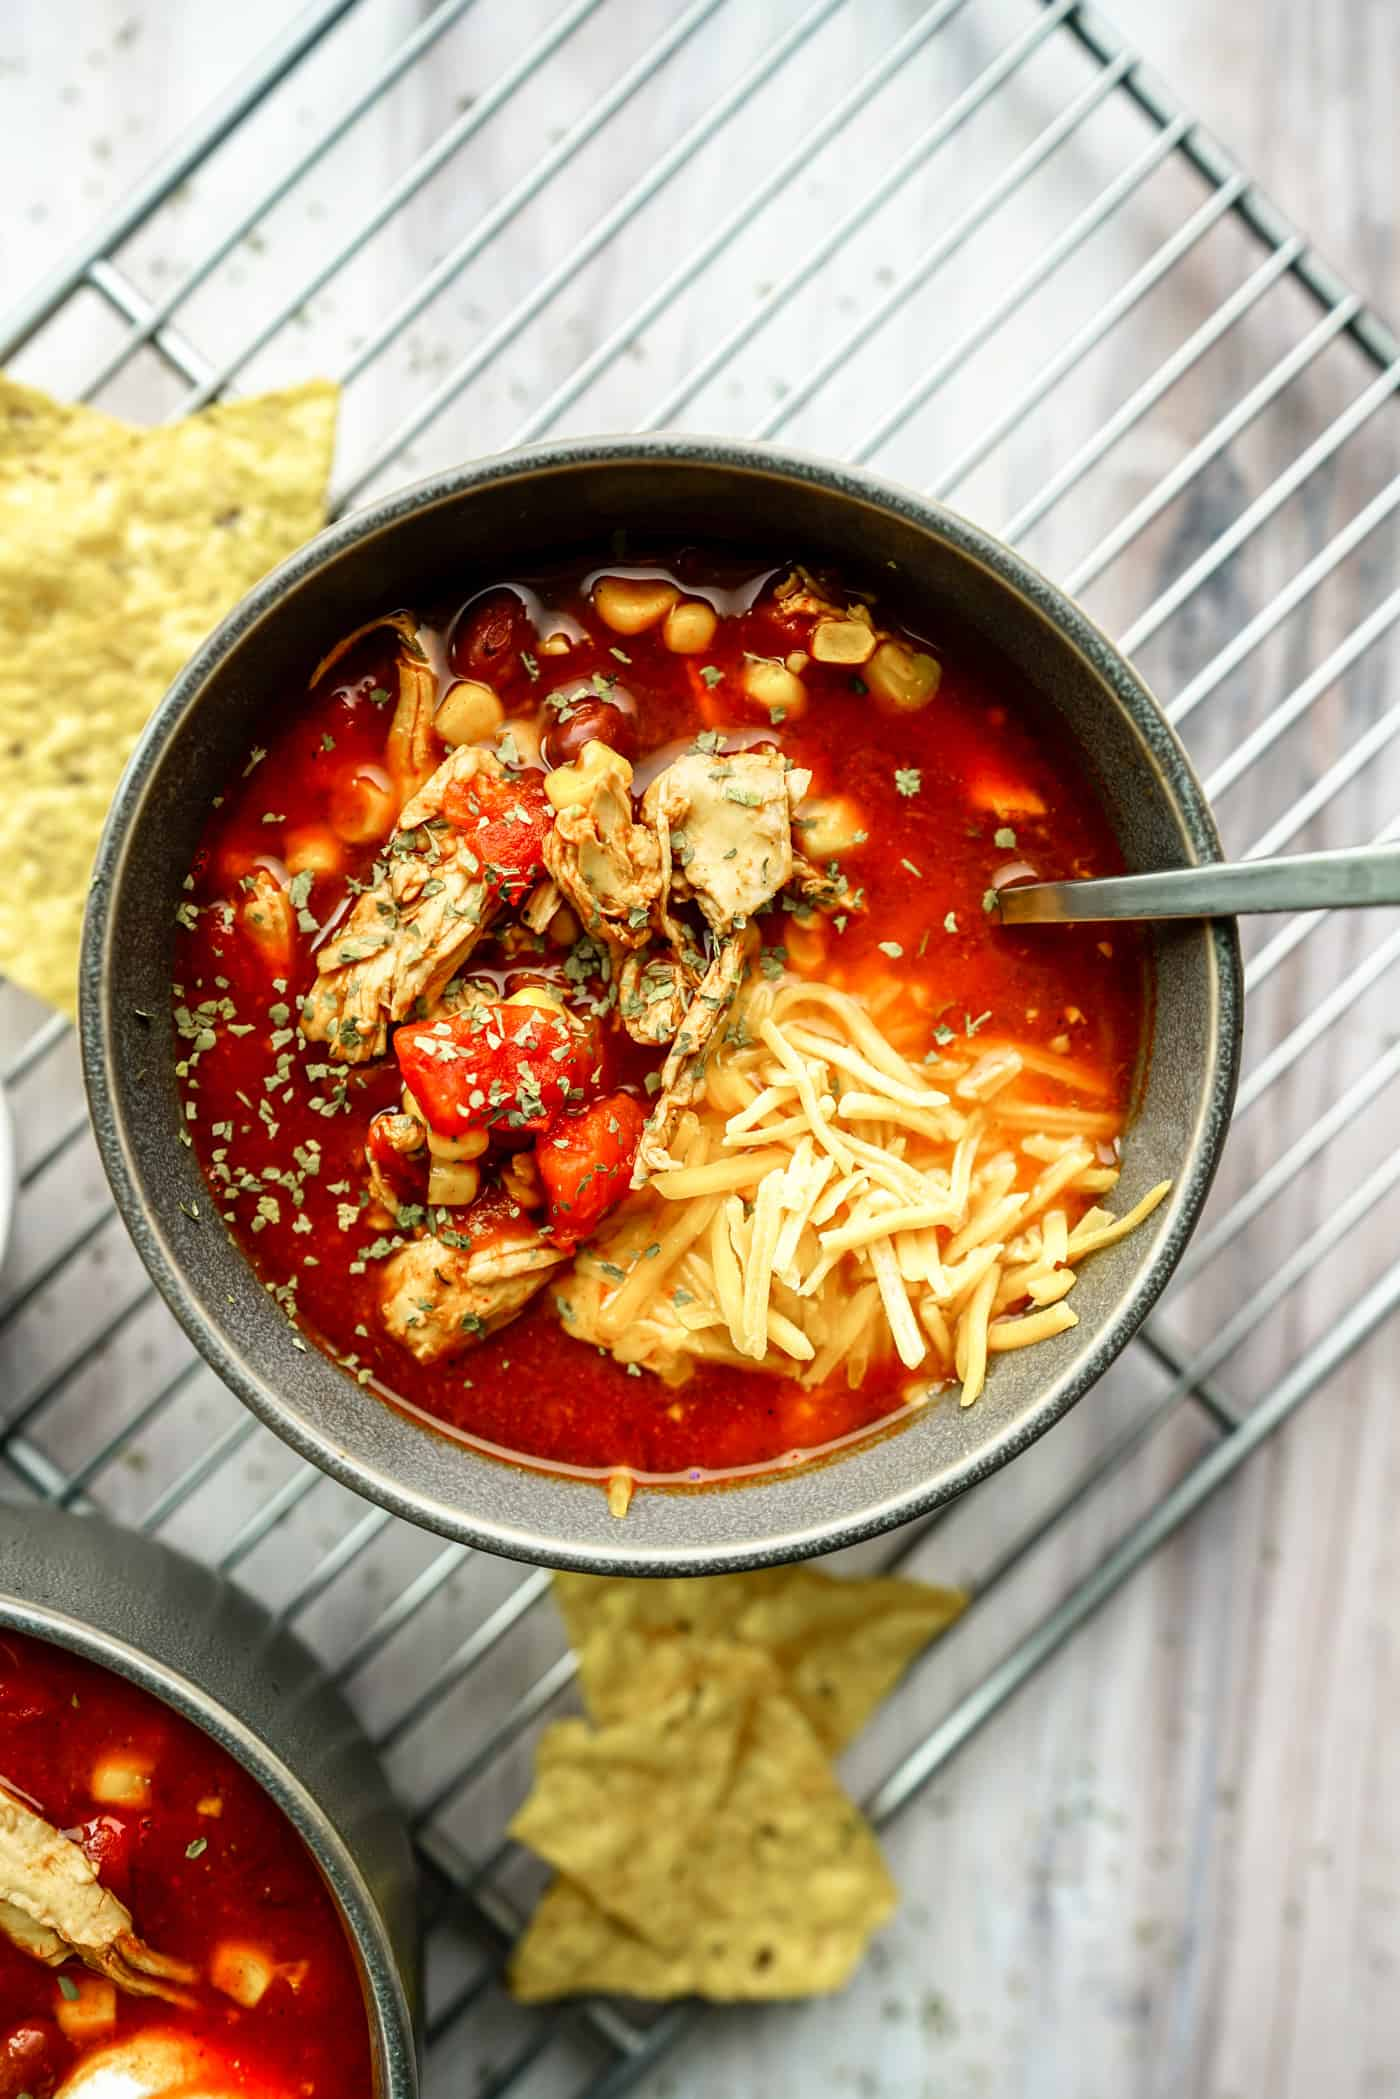 Need a quick and easy dinner for this week? This Instant Pot Chicken Enchilada Soup is one of the quickest, easiest and most flavorful recipes you'll make in your Instant Pot! Simply dump the ingredients into your Instant Pot, cook for 10 minutes and serve!